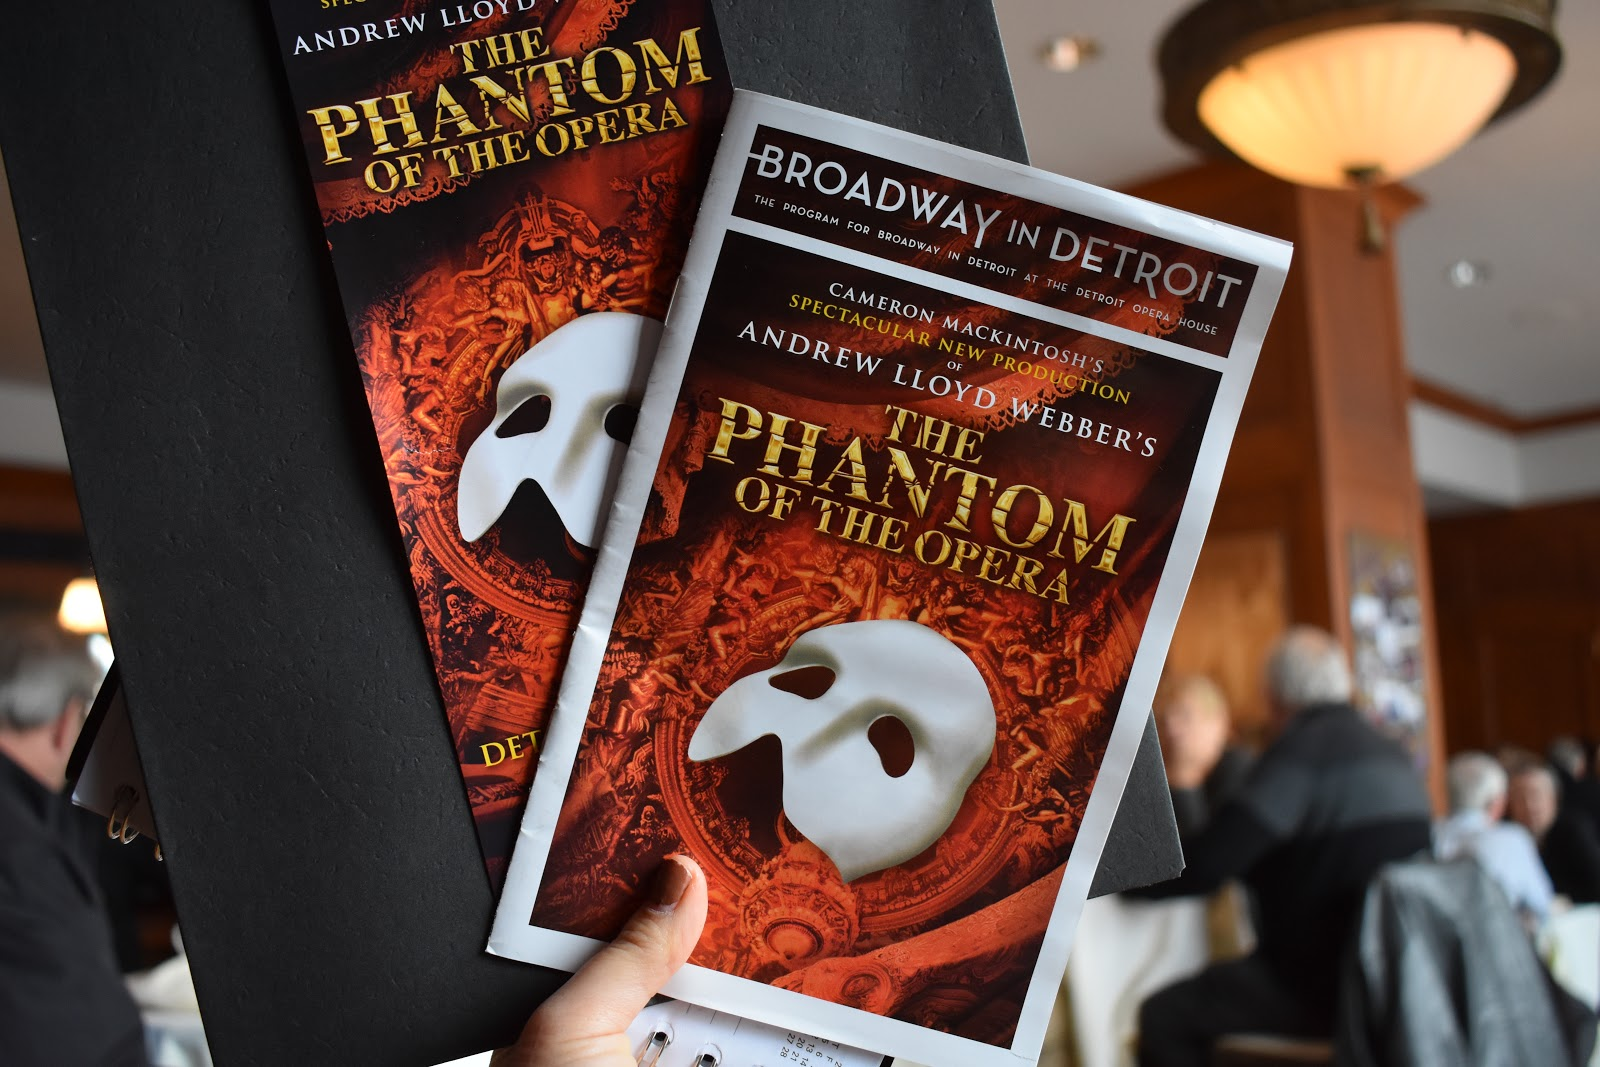 Phantom of the Opera at the Detroit Opera House